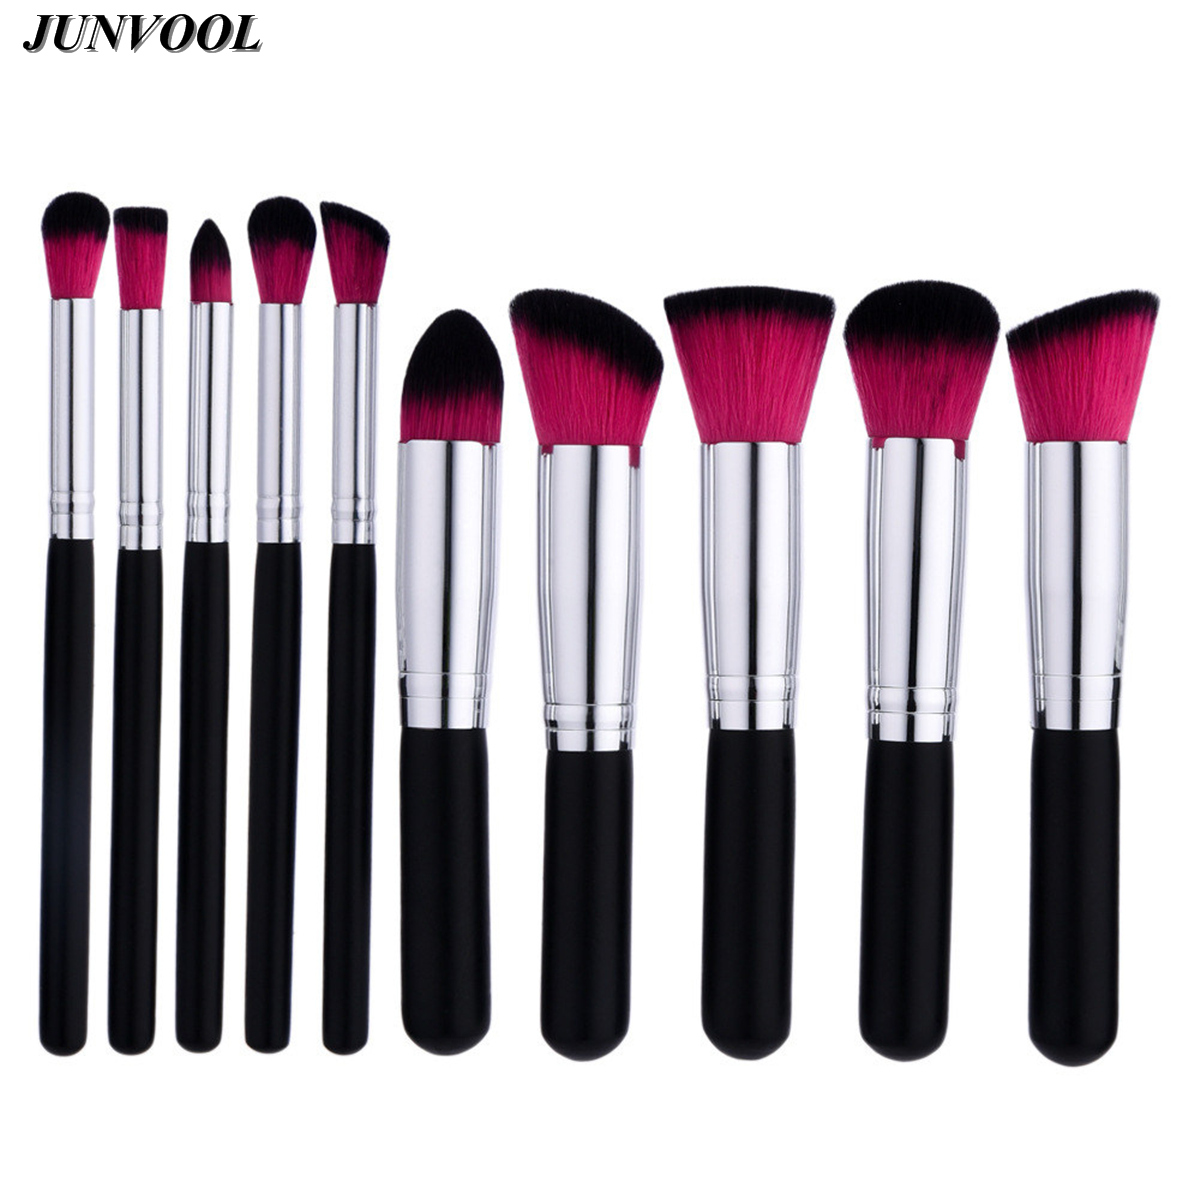 Professional 10 Pcs Makeup Brush Black Pink Hair Pincel Maquiagem Cosmetic Make Up Brushes Set with Black Silver Wood Handle aquarium liquid glitter brush set mermaid makeup brushes bling bling glitter handle make up brush kit pincel sereia maquiagem